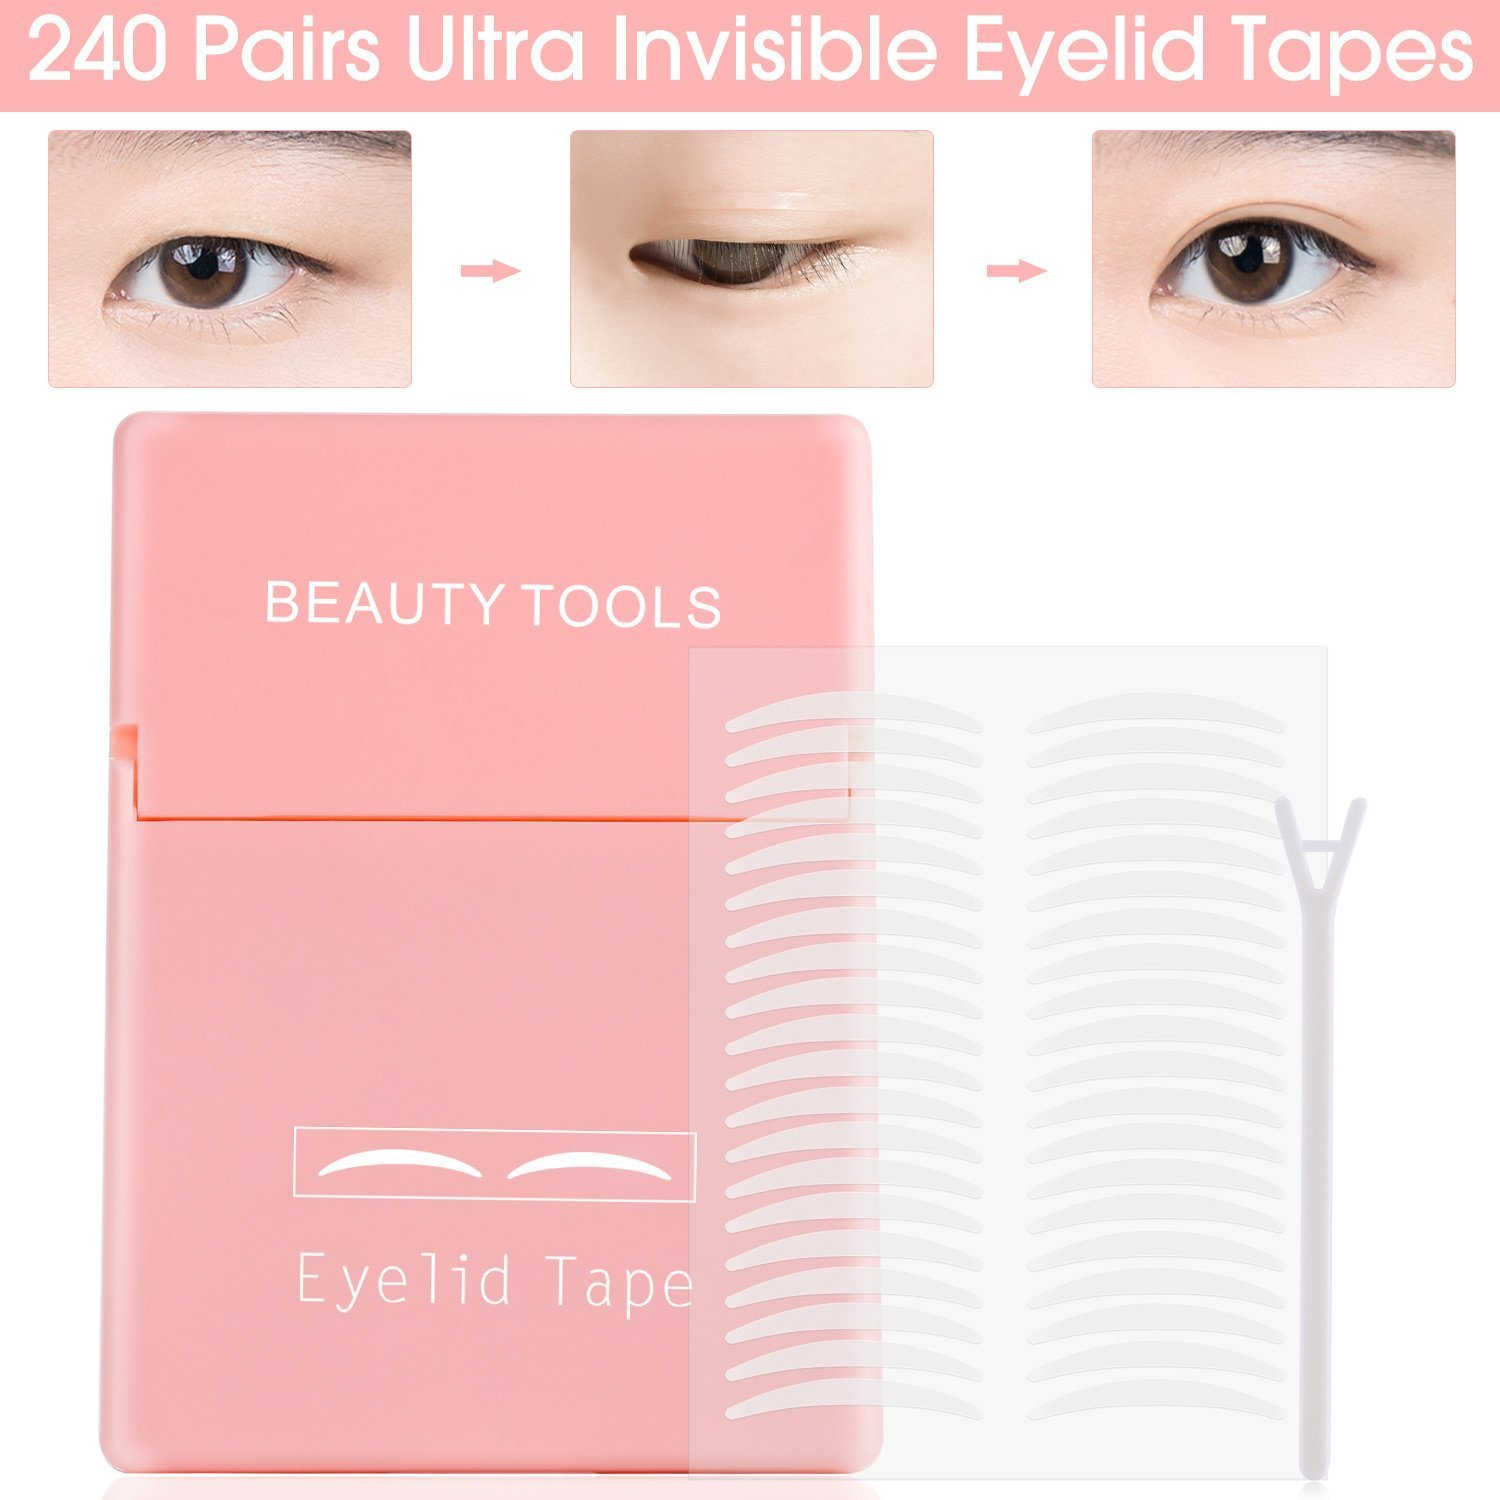 480Pcs/240Pairs Double Eyelid Tape Stickers - Ultra Invisible Breathable Fiber - Instant Eye Lift Without Surgery - Perfect for Hooded, Droopy, Uneven, or Mono-eyelids (M)